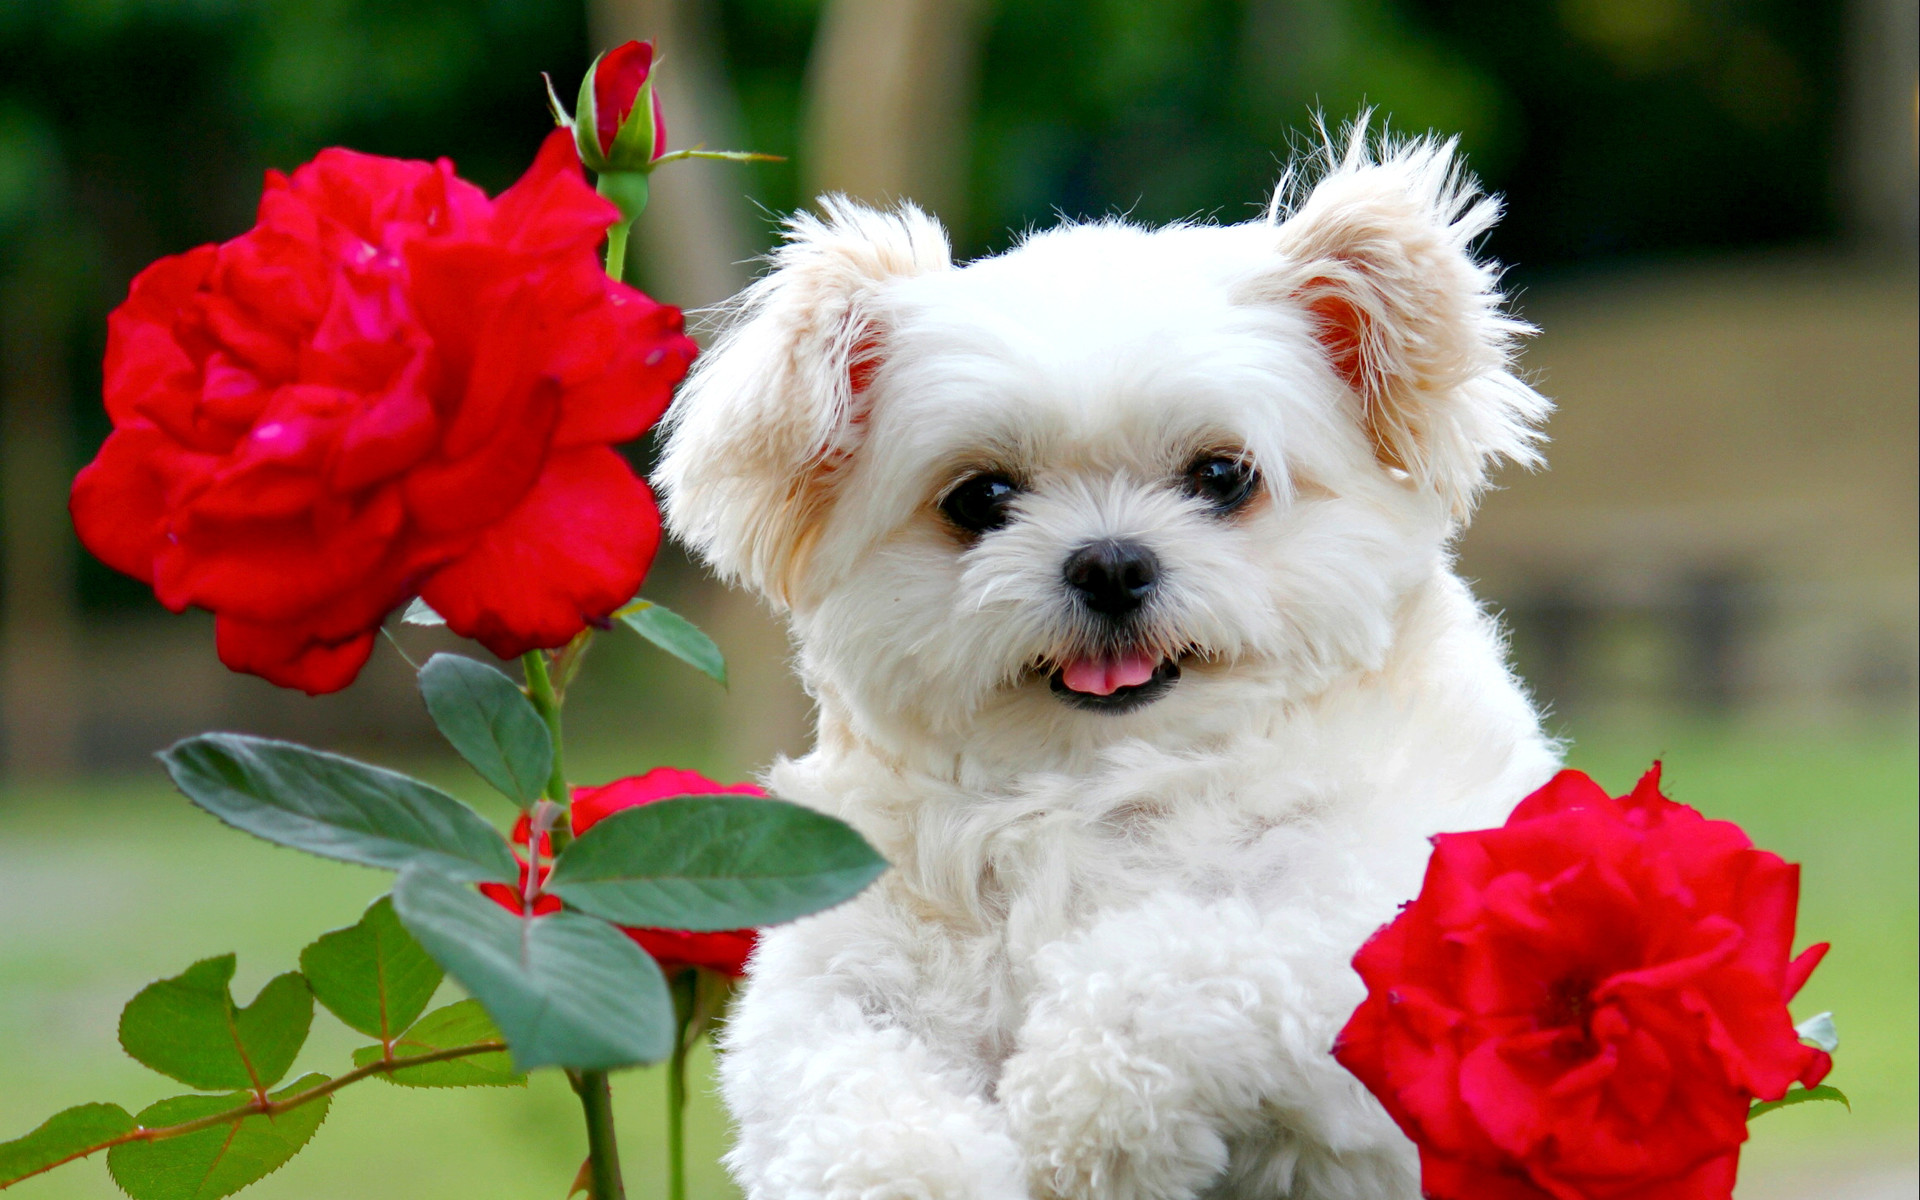 Cute Kittens And Puppies Together Wallpaper The Cutest Puppies